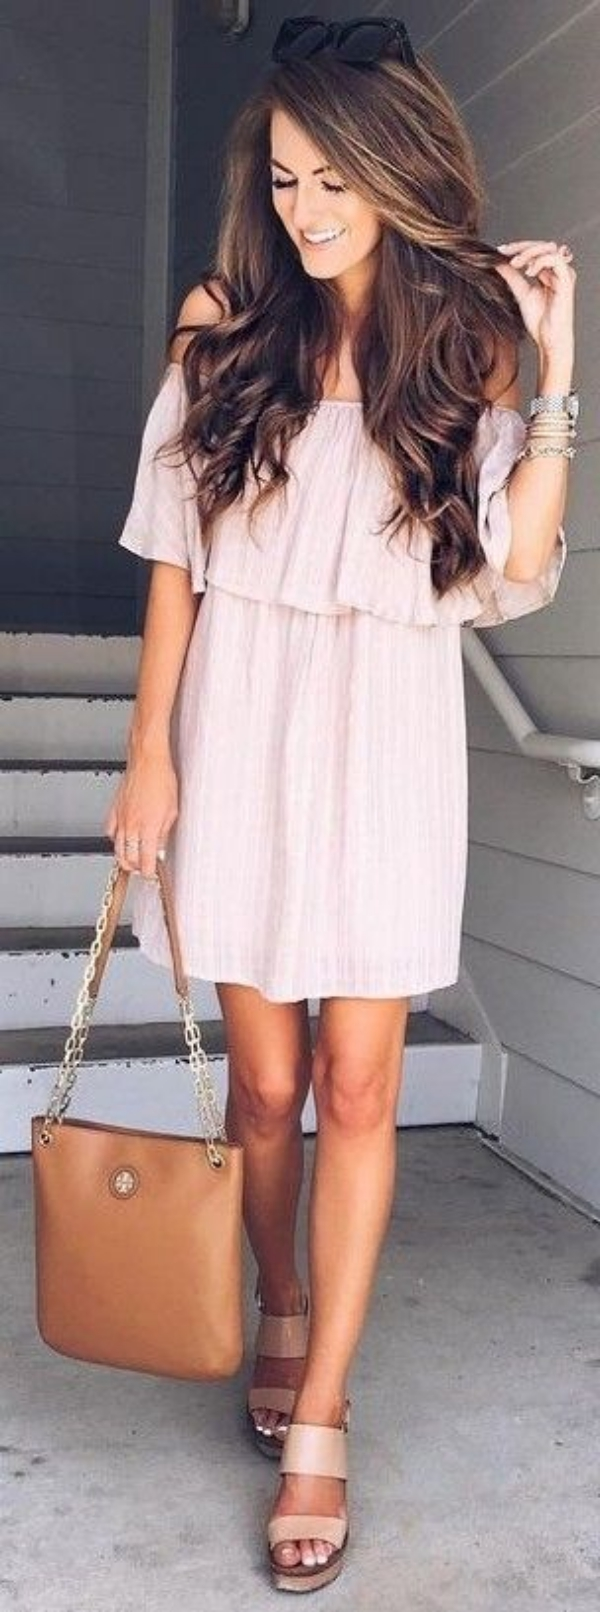 40 Cute Preppy Fashion Outfits To Try This Year